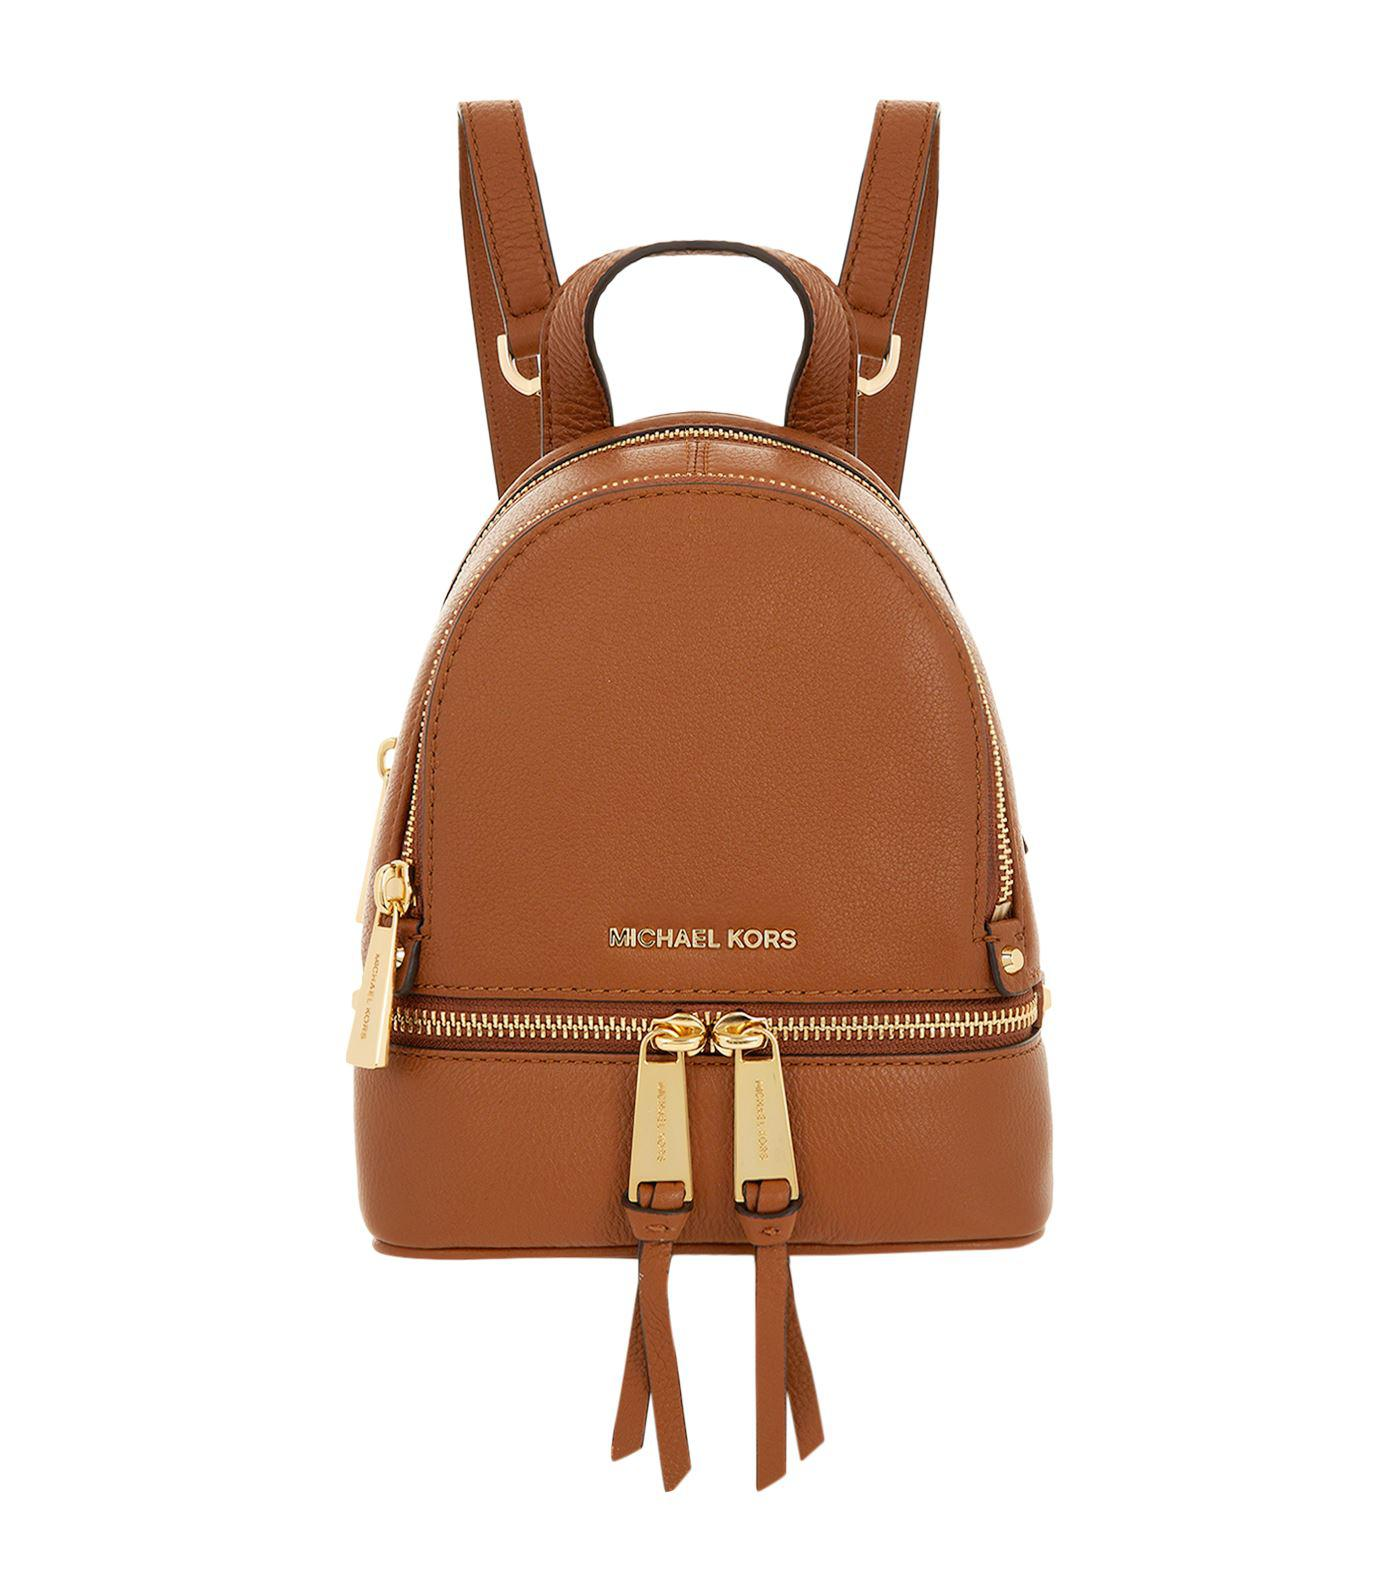 307bbe3394d8 Gallery. Previously sold at: Harrods · Women's Mini Backpack Women's Michael  By Michael Kors Rhea